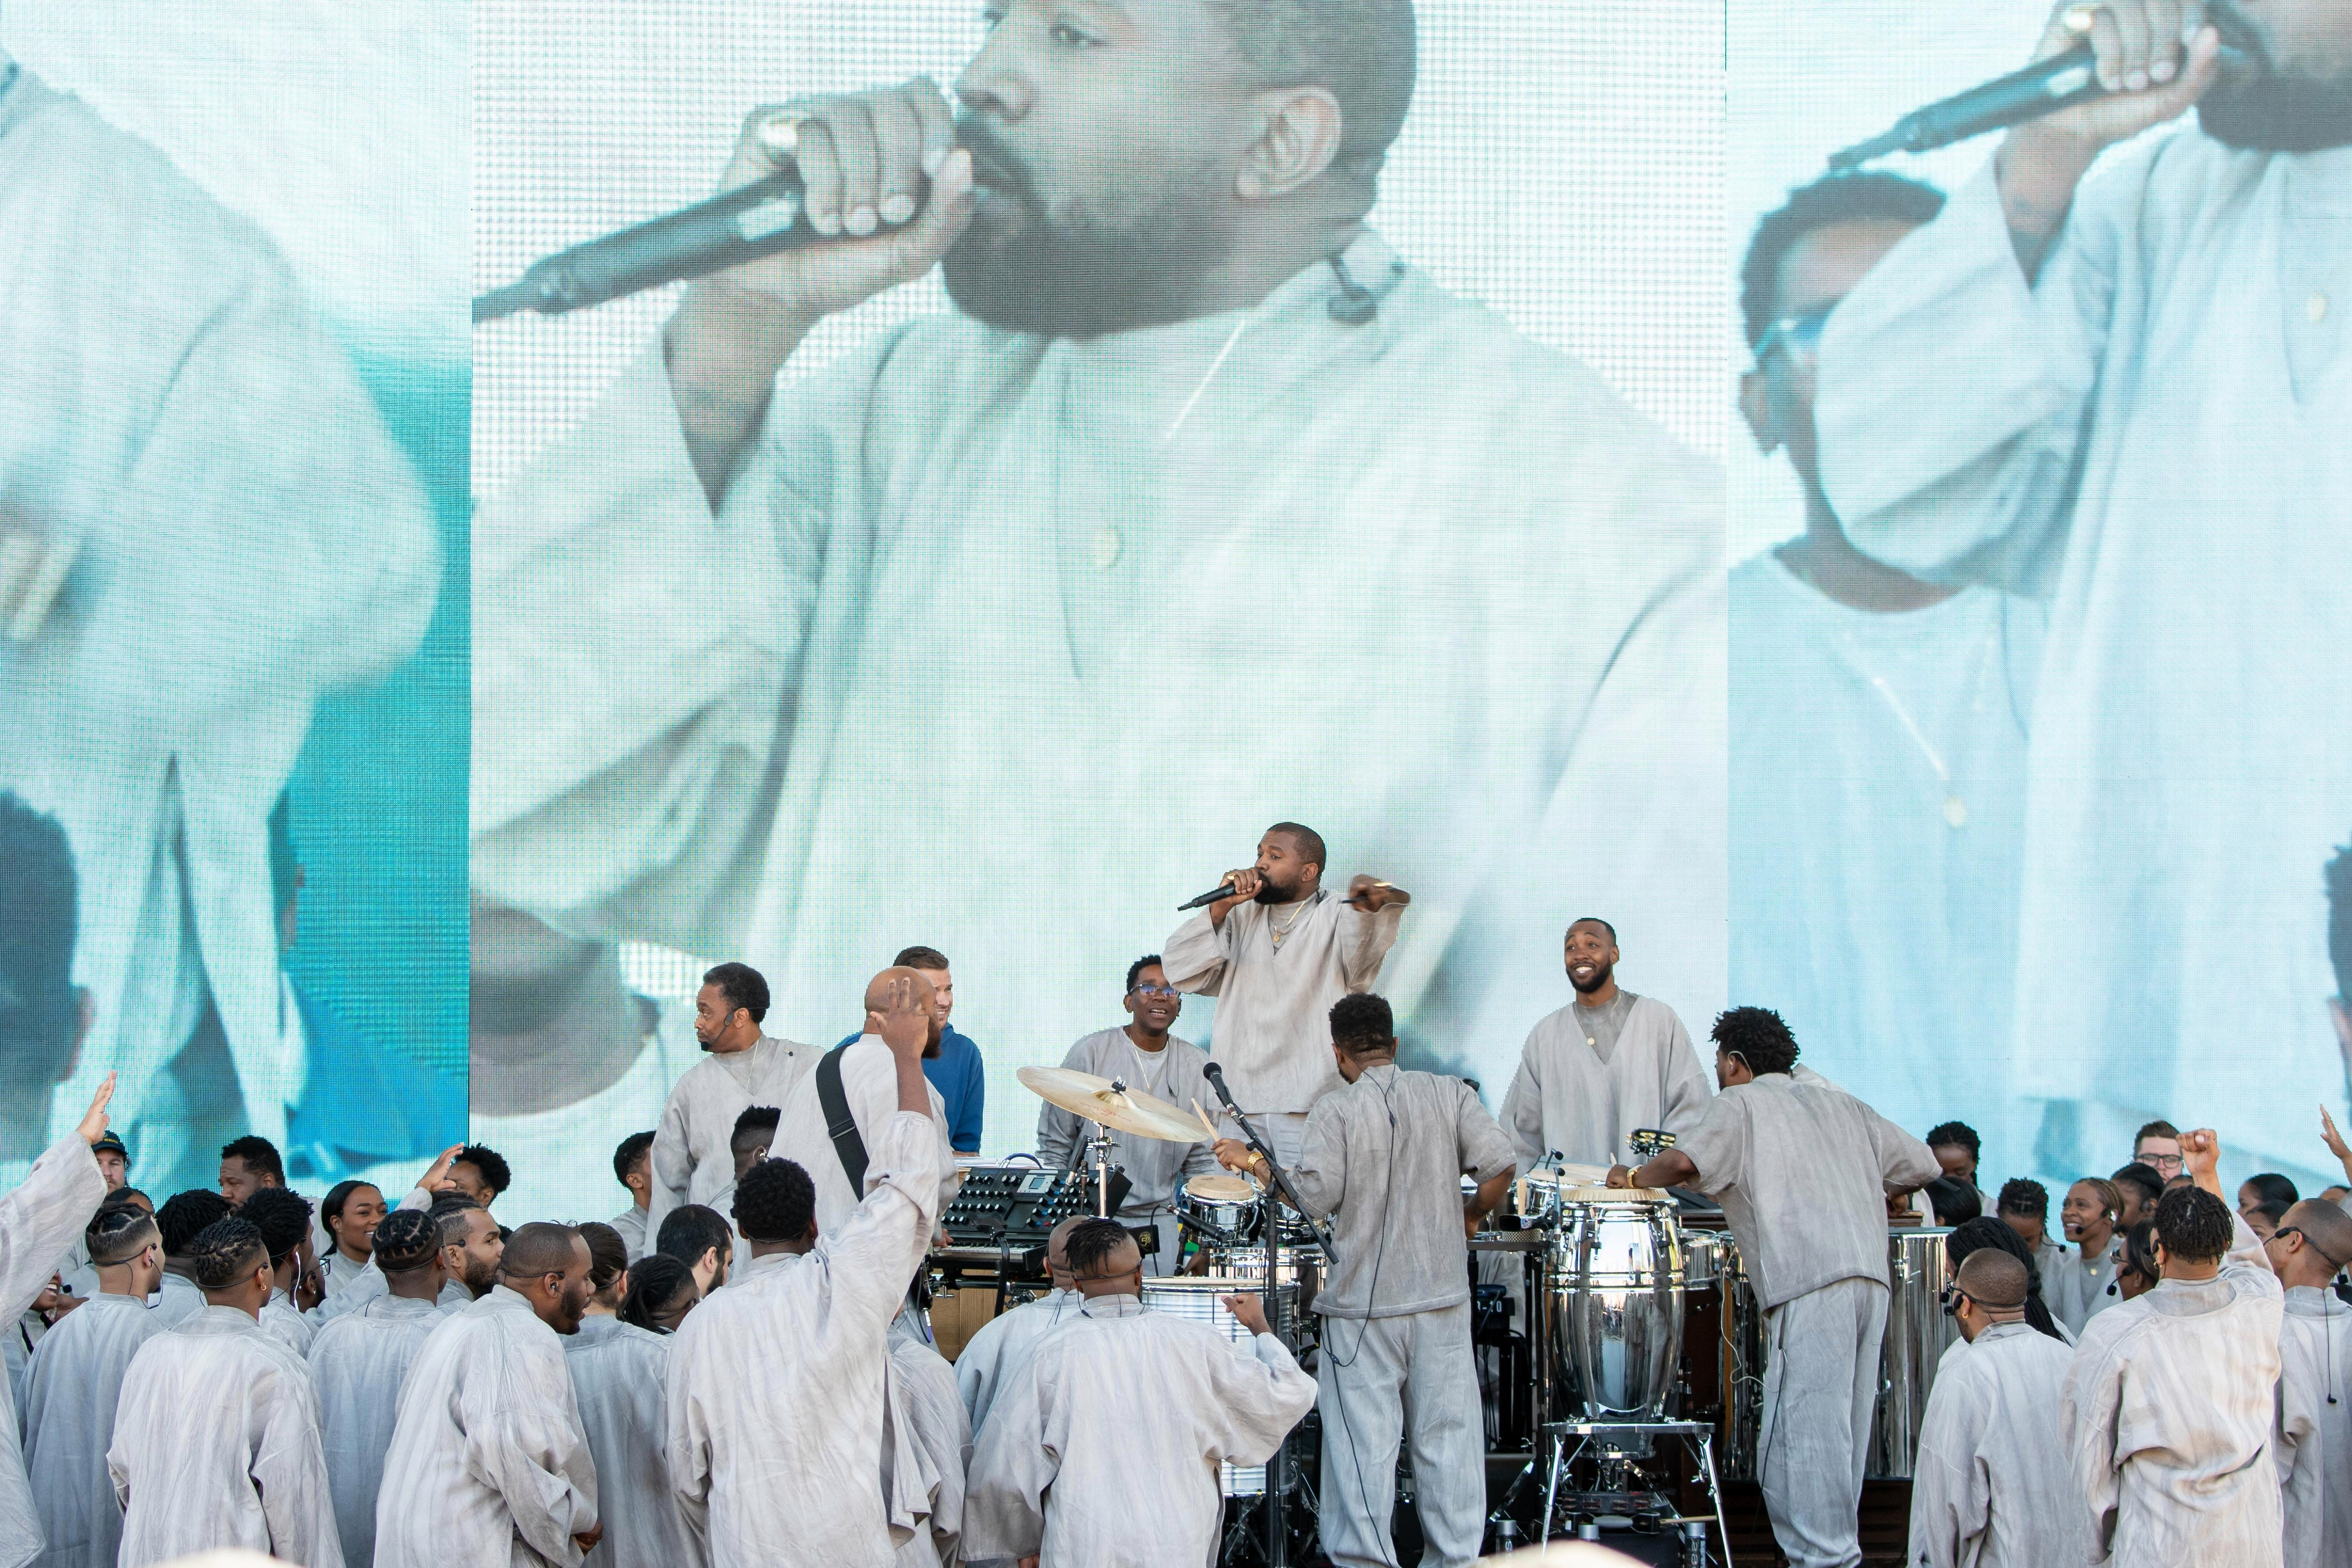 Ye performed huge concerts with the Sunday Service Choir ahead of his album release for Jesus Is King